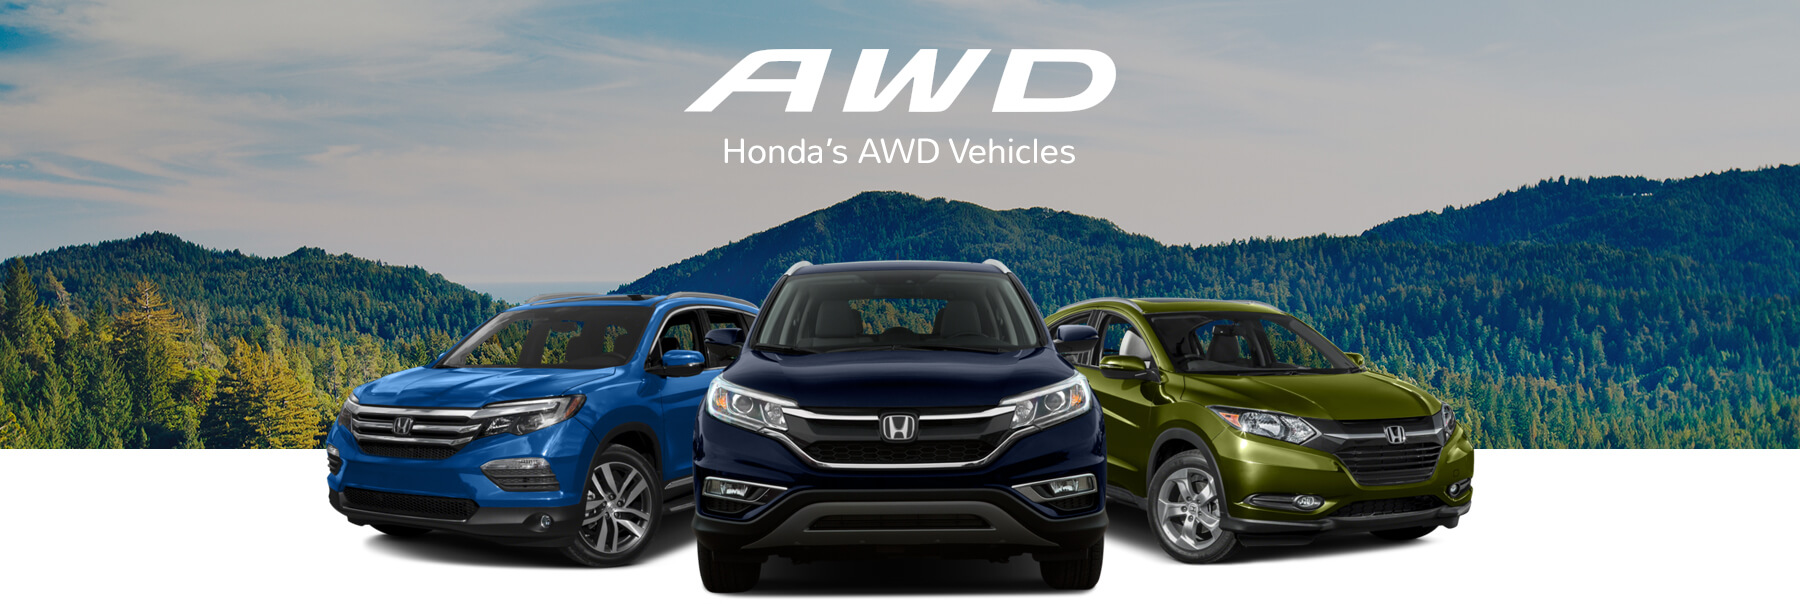 AWD Vehicles